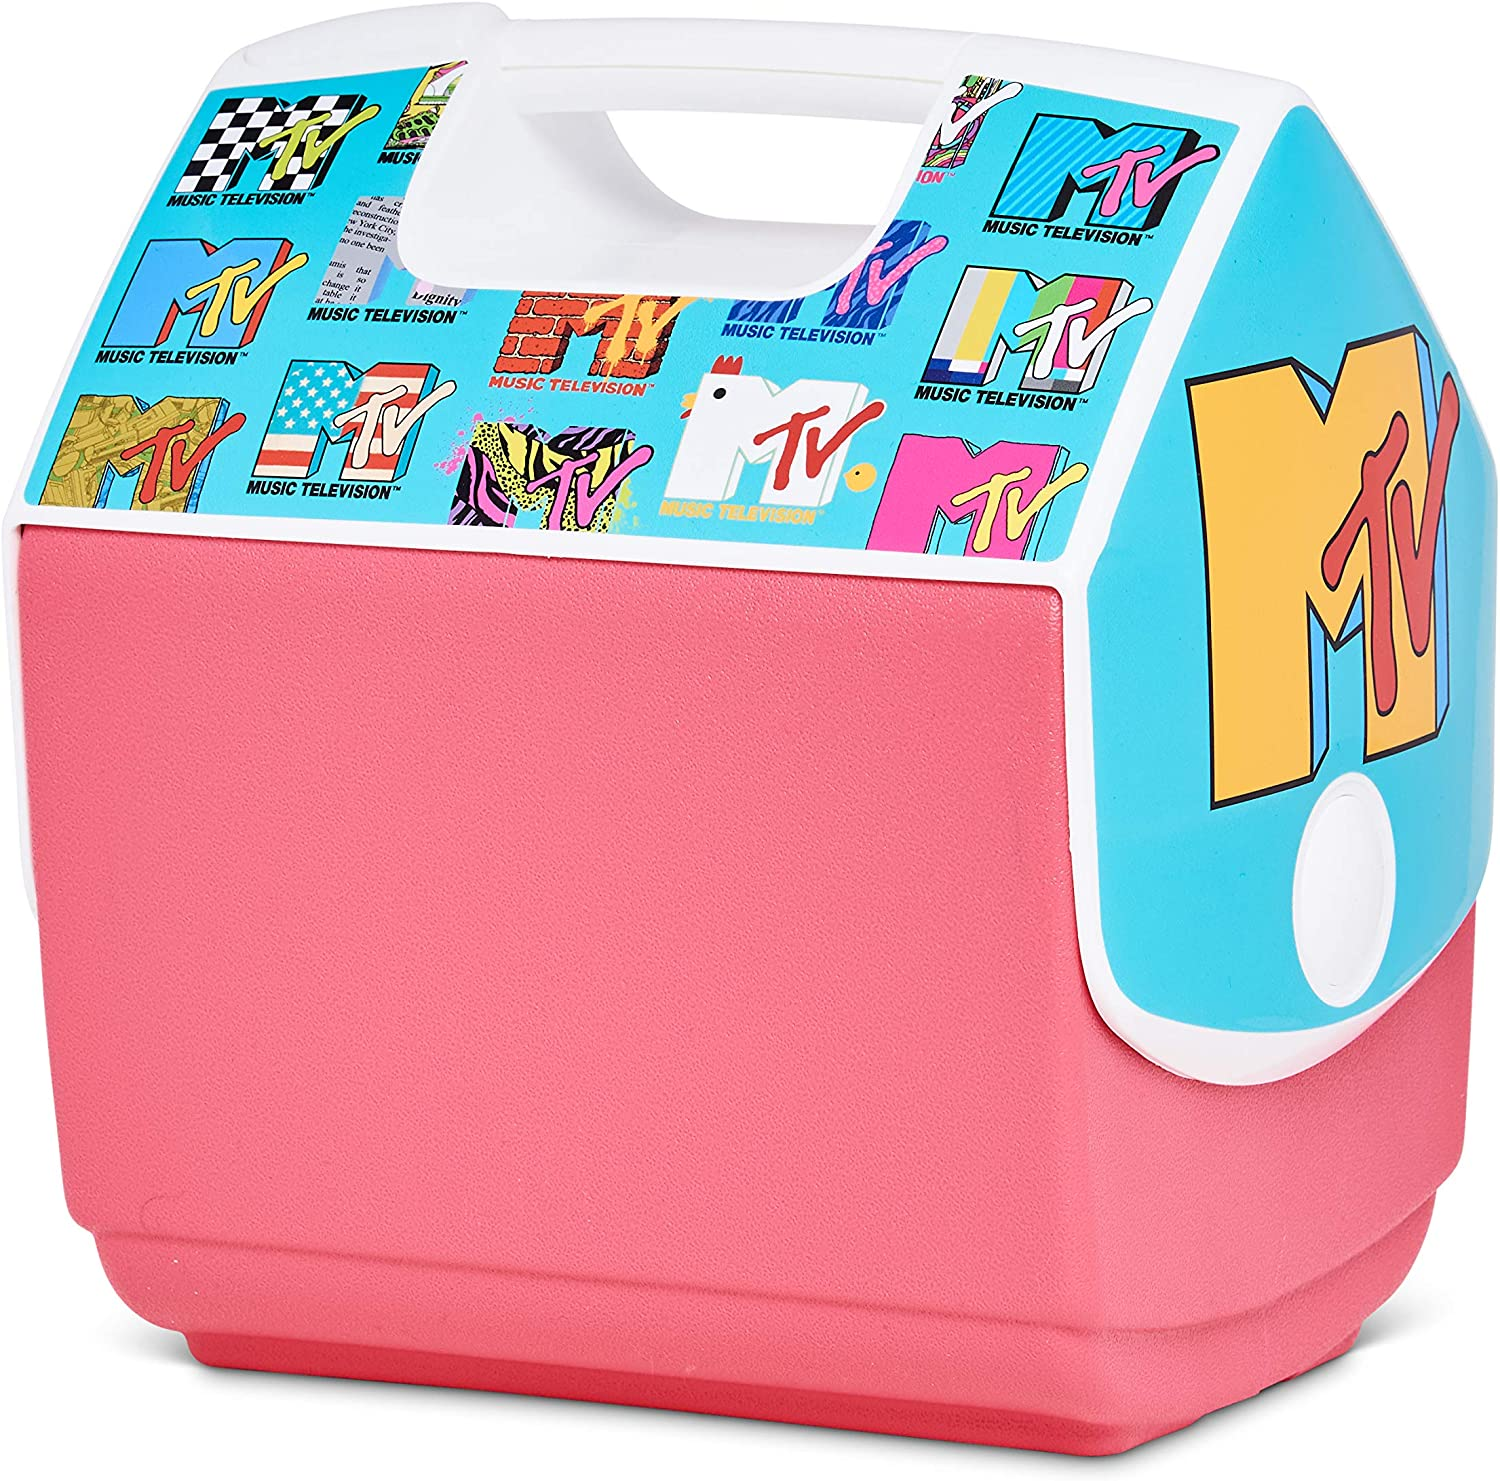 Sale Igloo 7 Qt Limited Popular shop is the lowest price challenge Edition Series Playmate